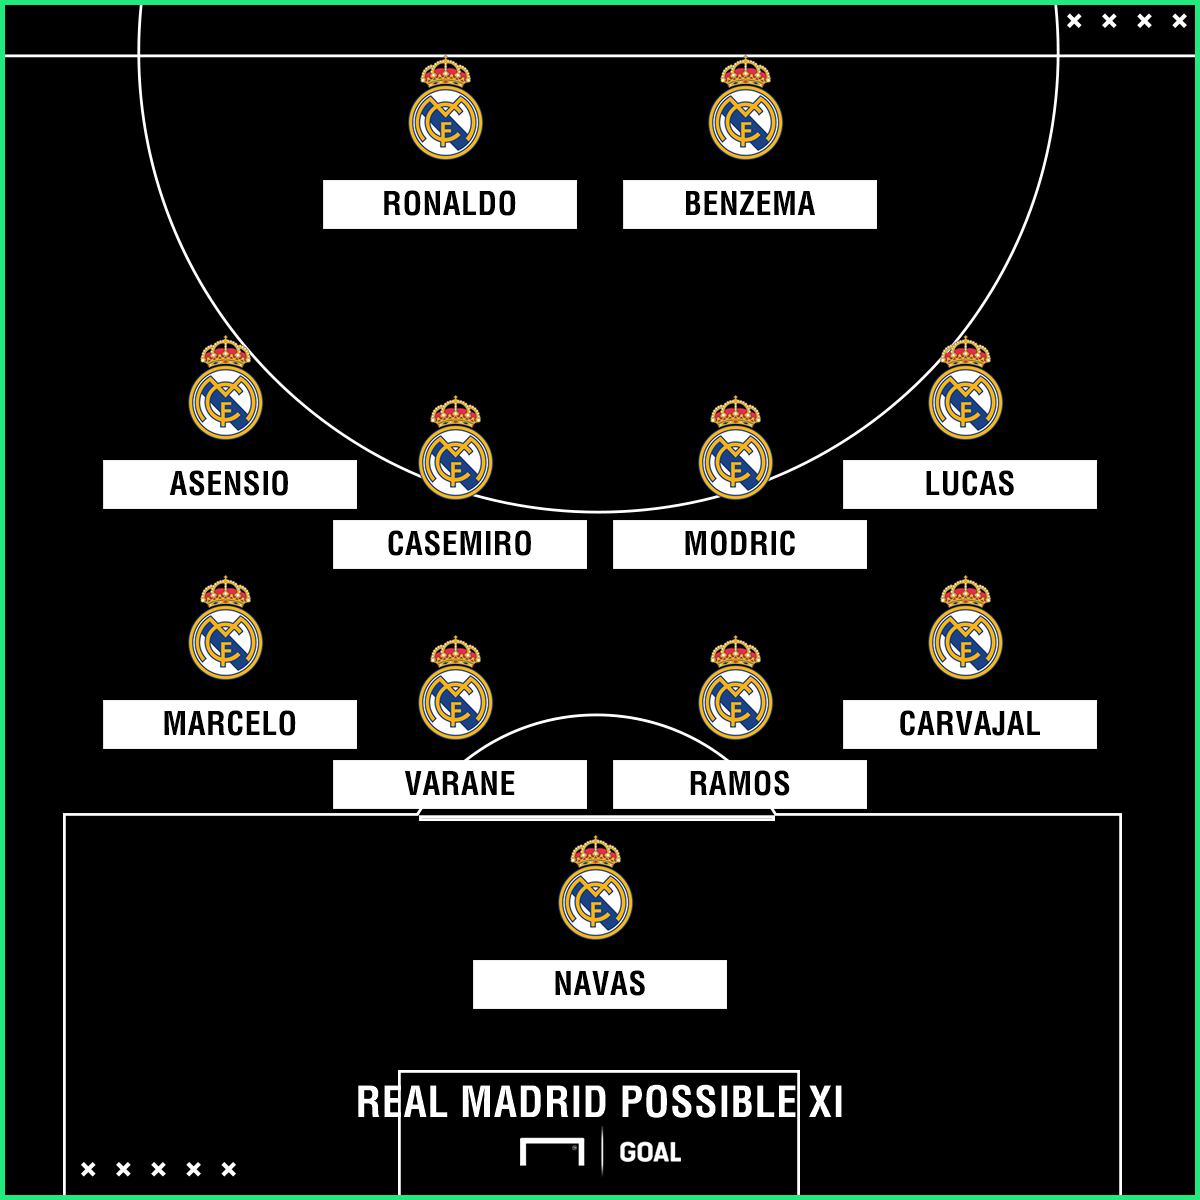 Real Madrid possible Atleti